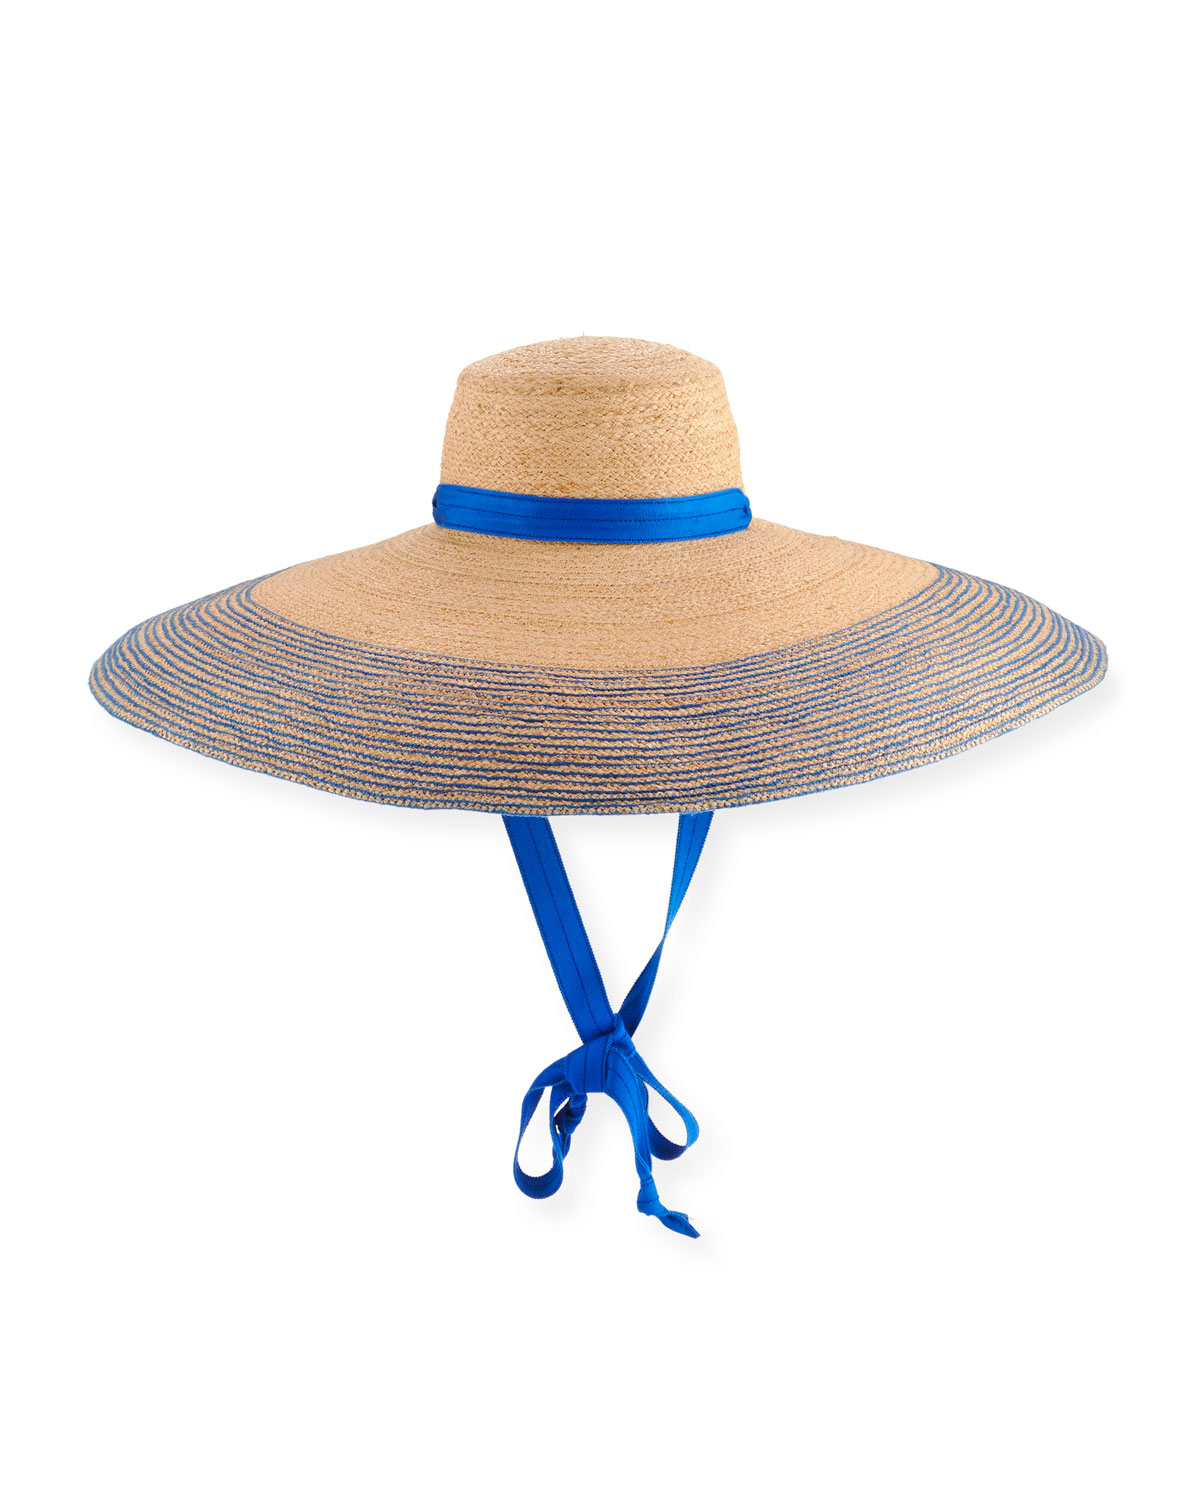 475d6794 Lola Hats Nomad Wide-Brim Raffia Sun Hat with Ribbon | Neiman Marcus